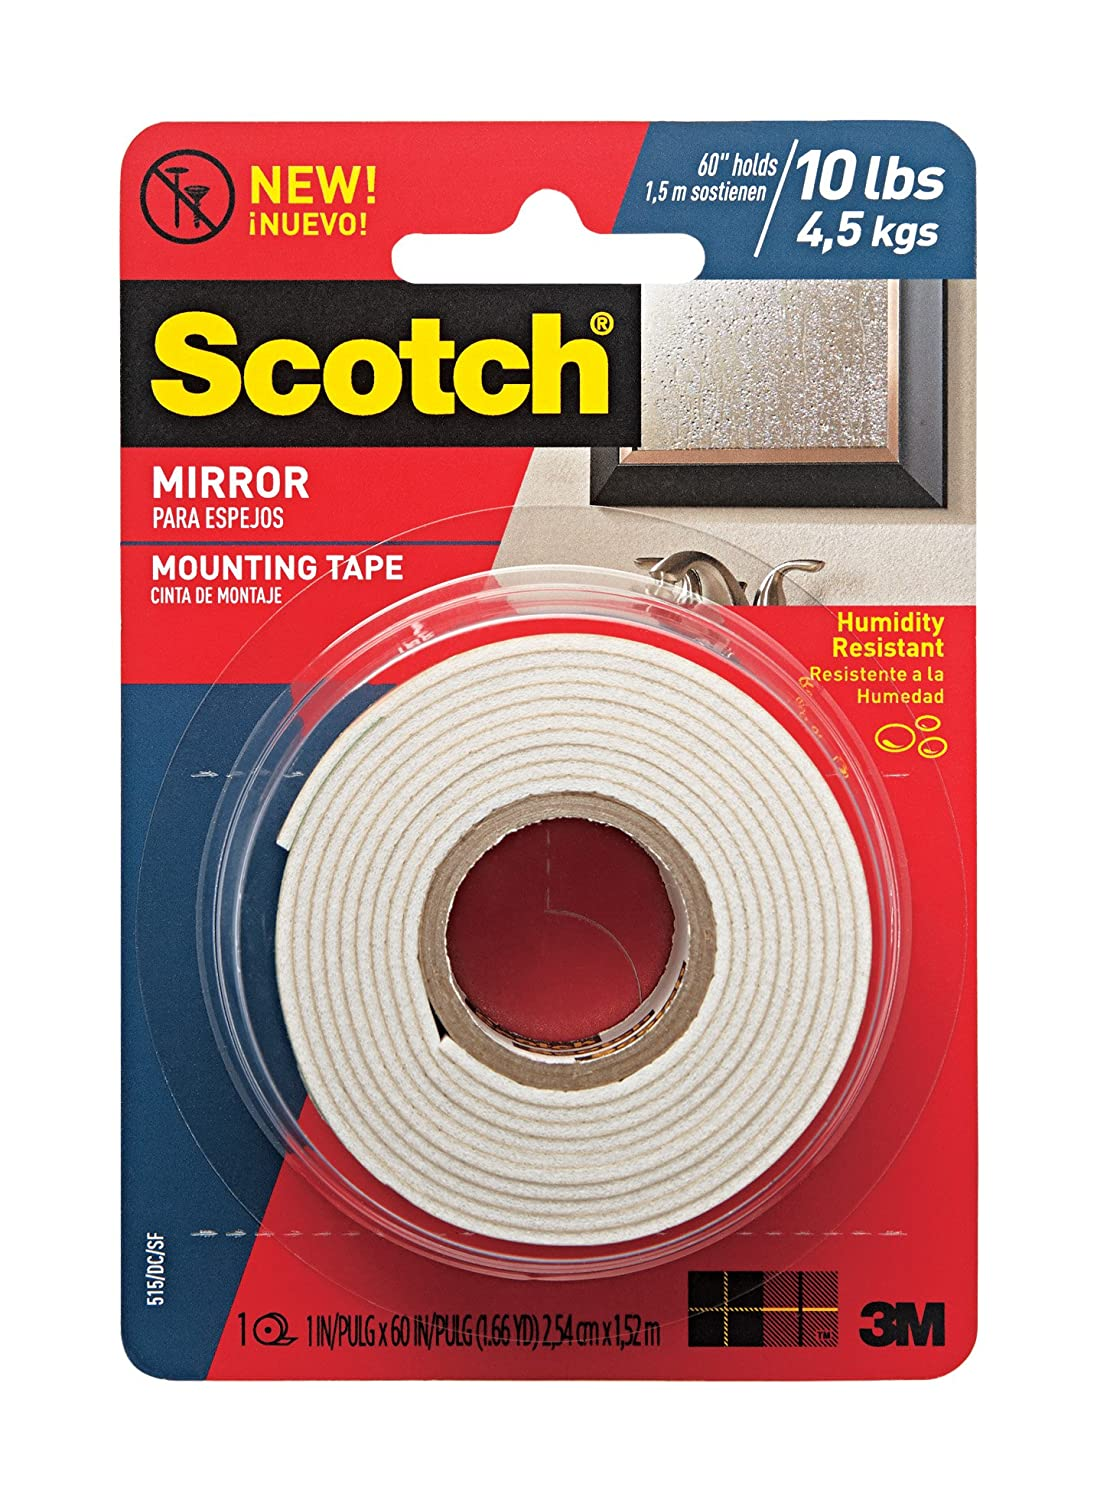 Scotch Mounting, Fastening & Surface Protection 051141402895 Scotch Mirror Mounting Tape, x 60-inches, White, 1-Roll (515P), 1